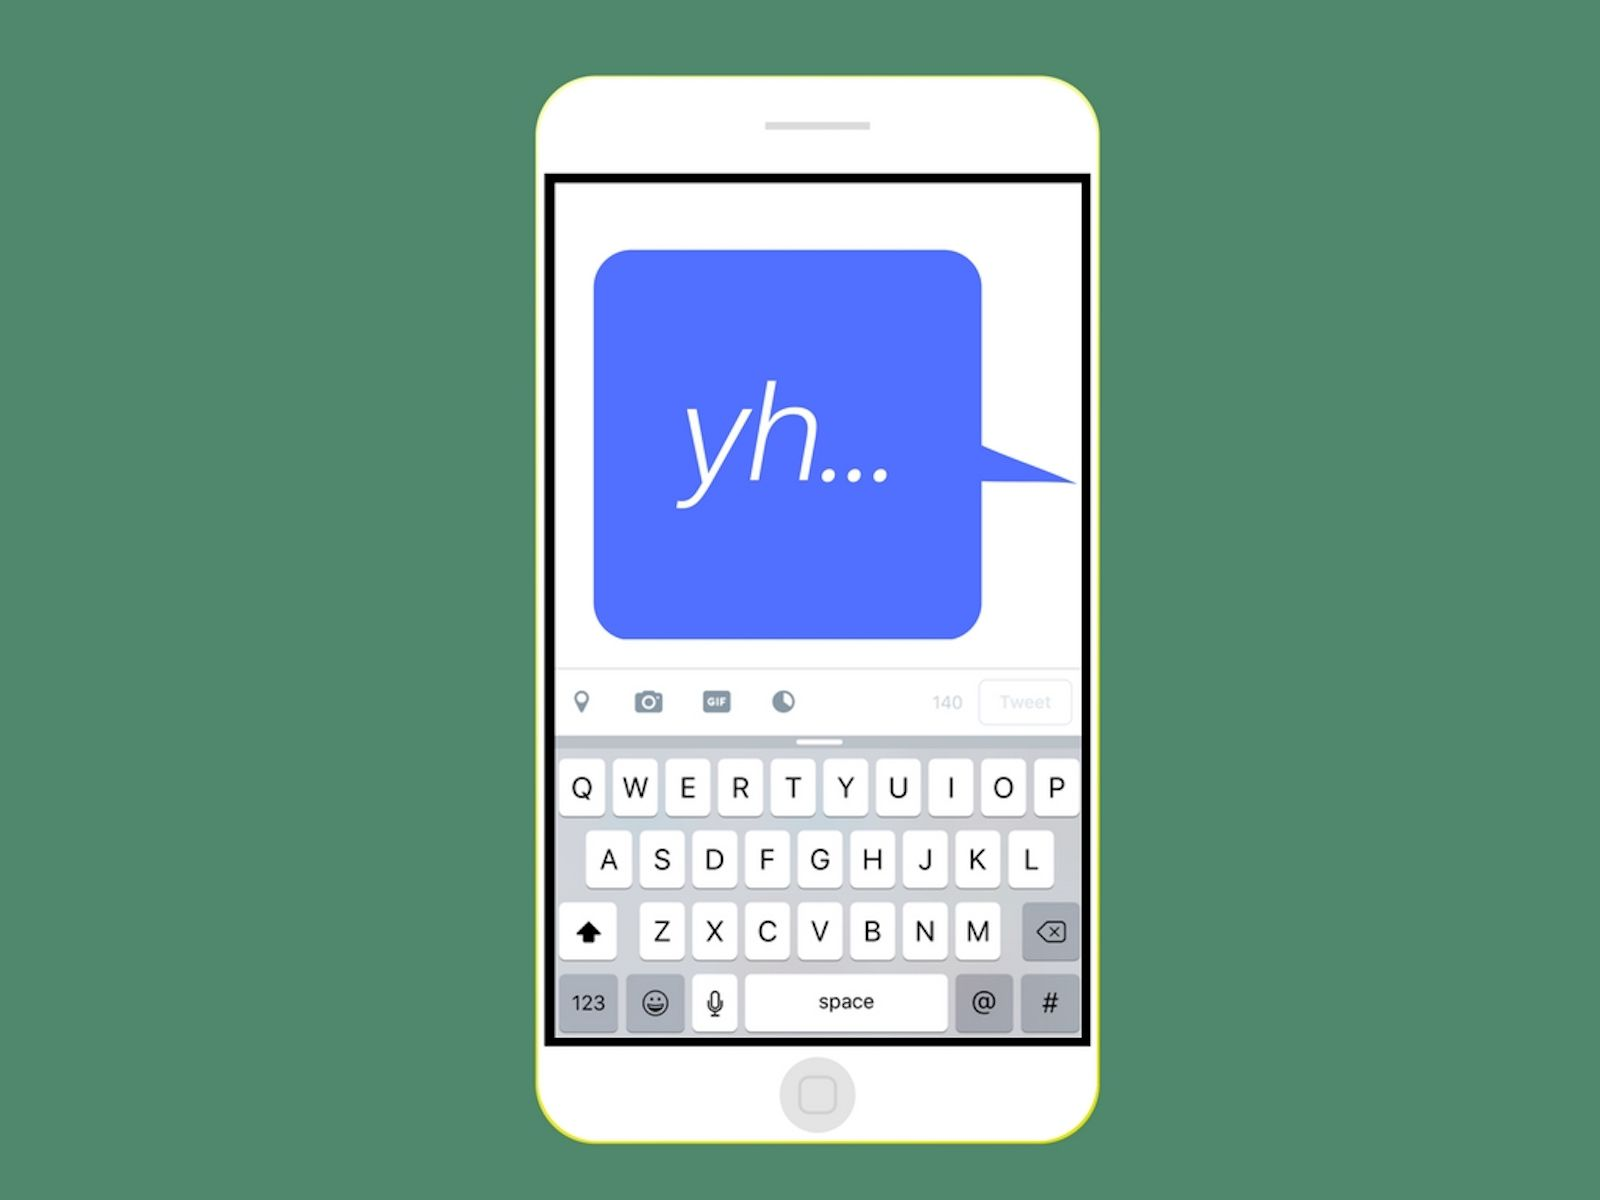 what does yh mean